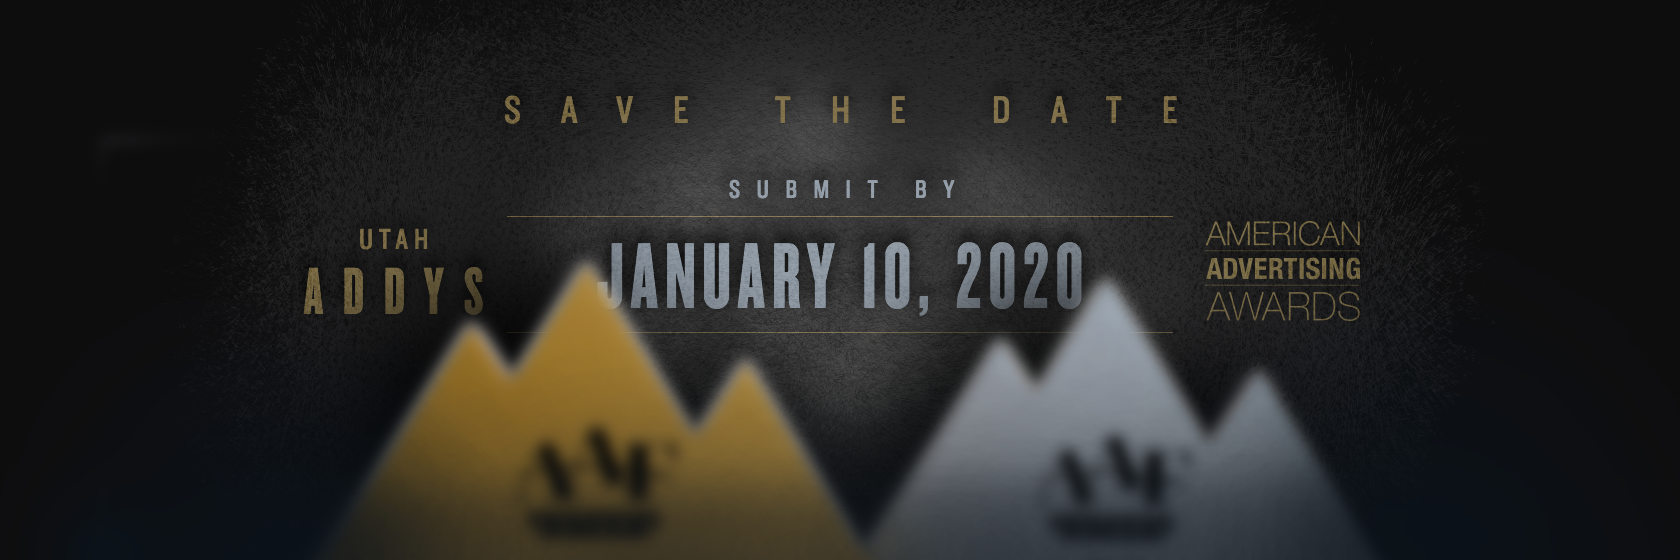 AAF Utah Addys 2019-2020 Submission Date